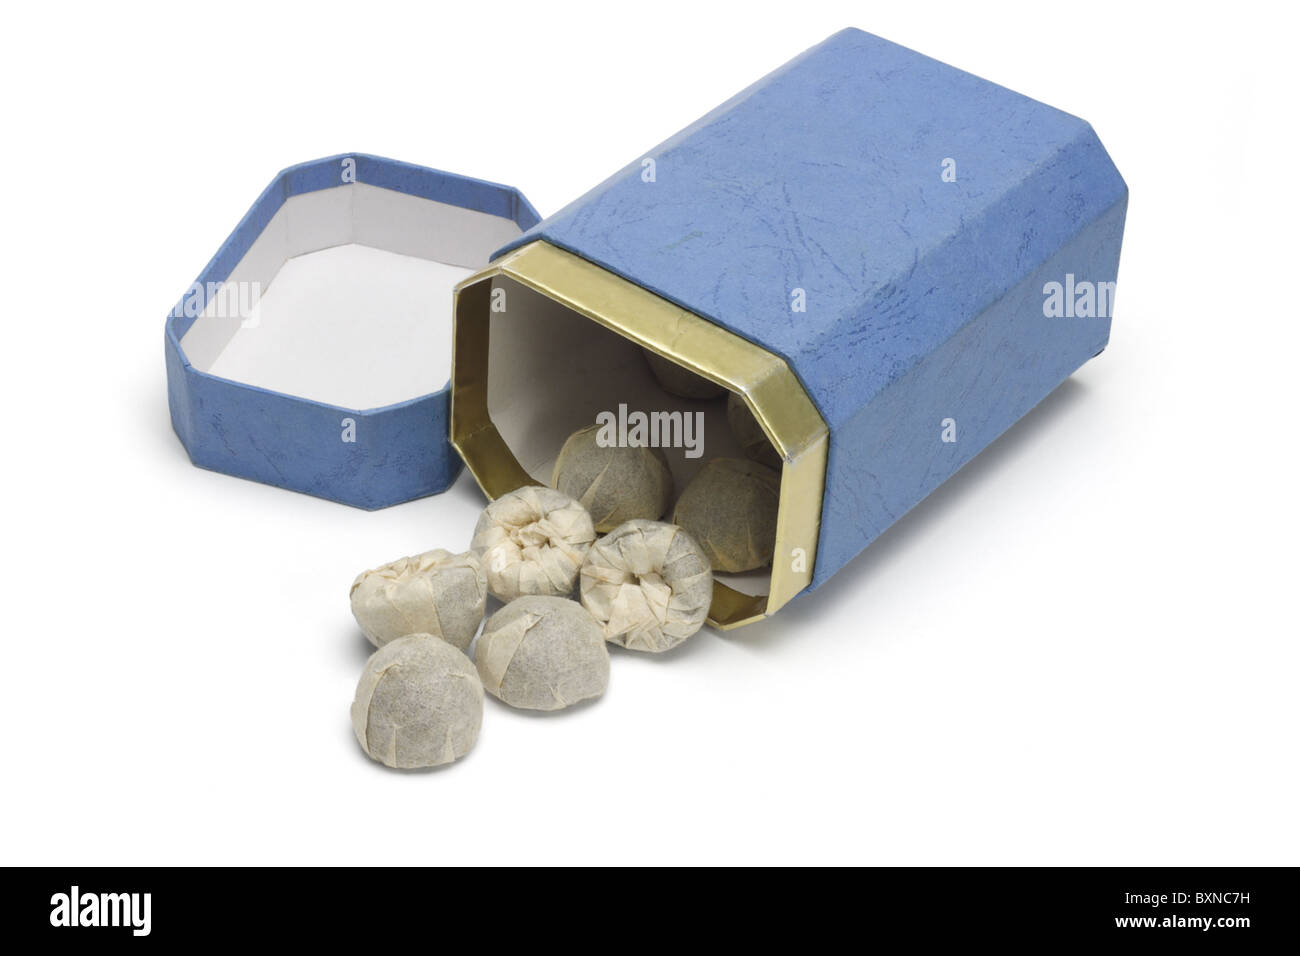 Chinese pressed tea blocks wrapped in paper and gift box ( Royal Pu erh Tuocha ) - Stock Image